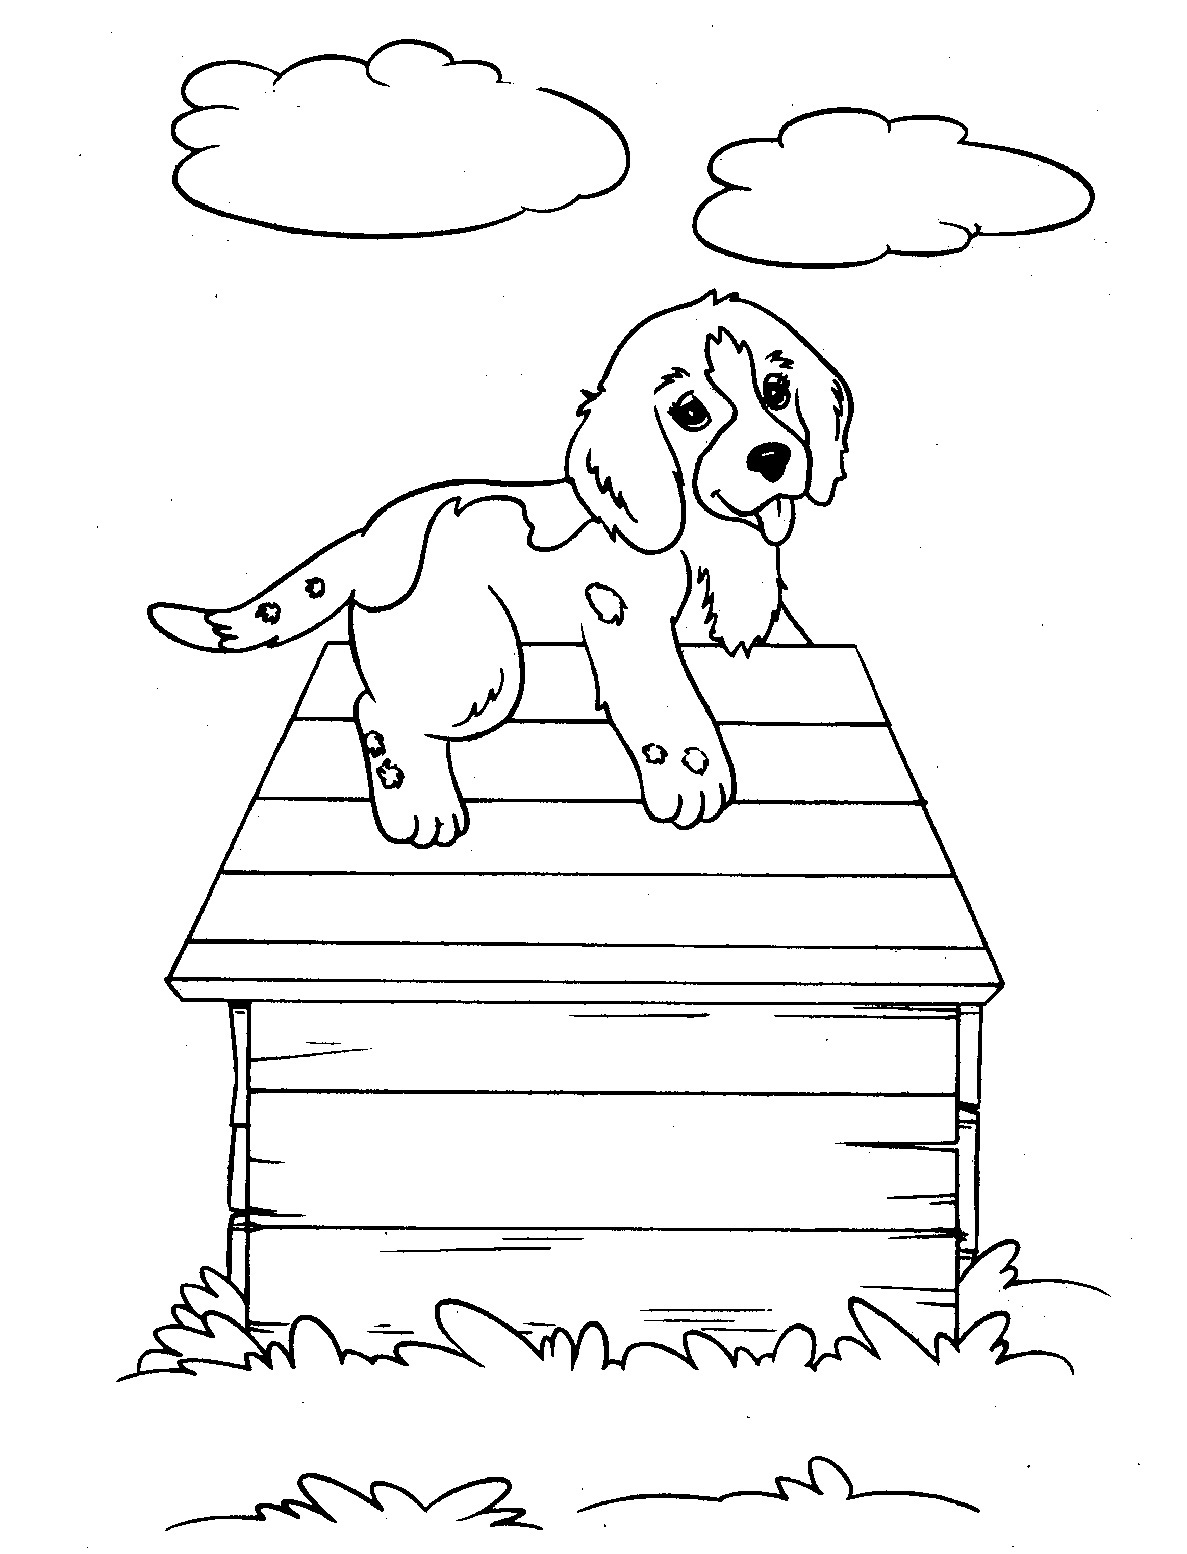 kids coloring puppy dog free to color for children cute female dog dogs coloring kids puppy